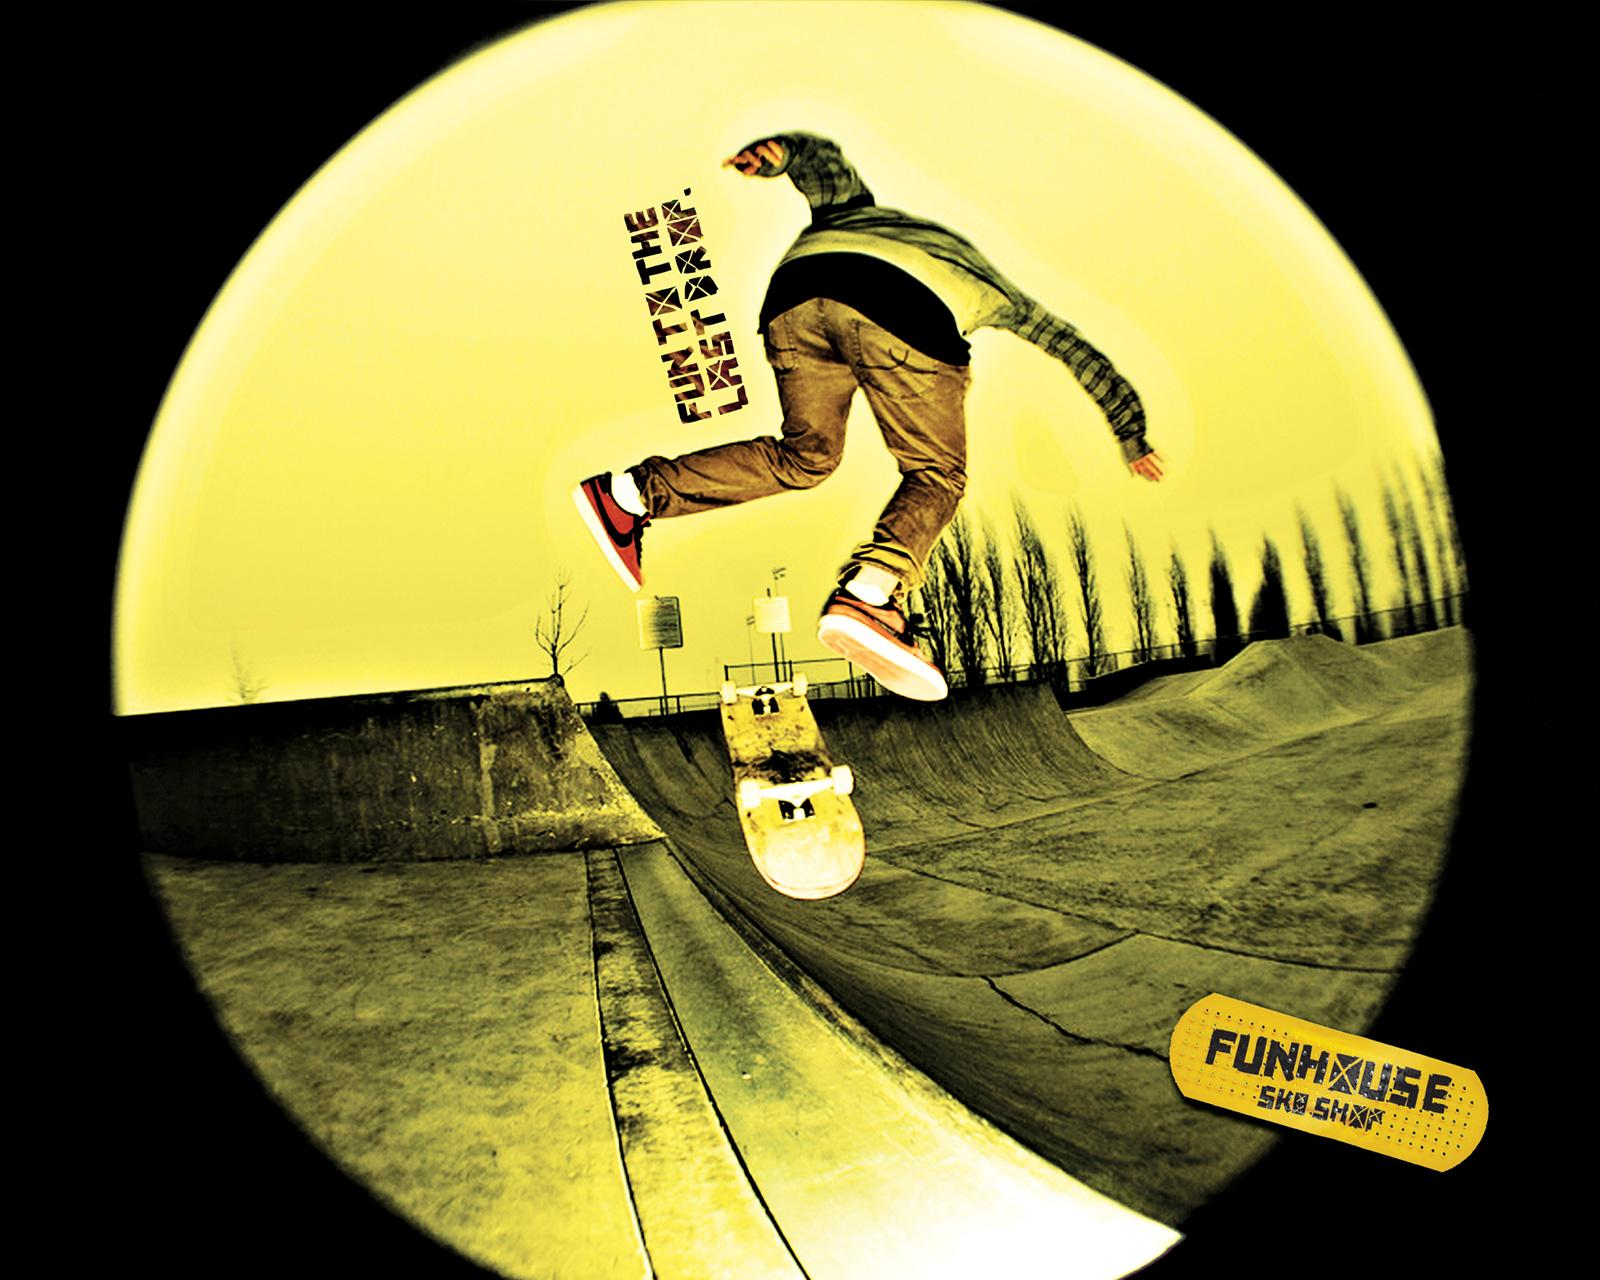 Funhouse SK8 Print Ad -  Fun to the last drop